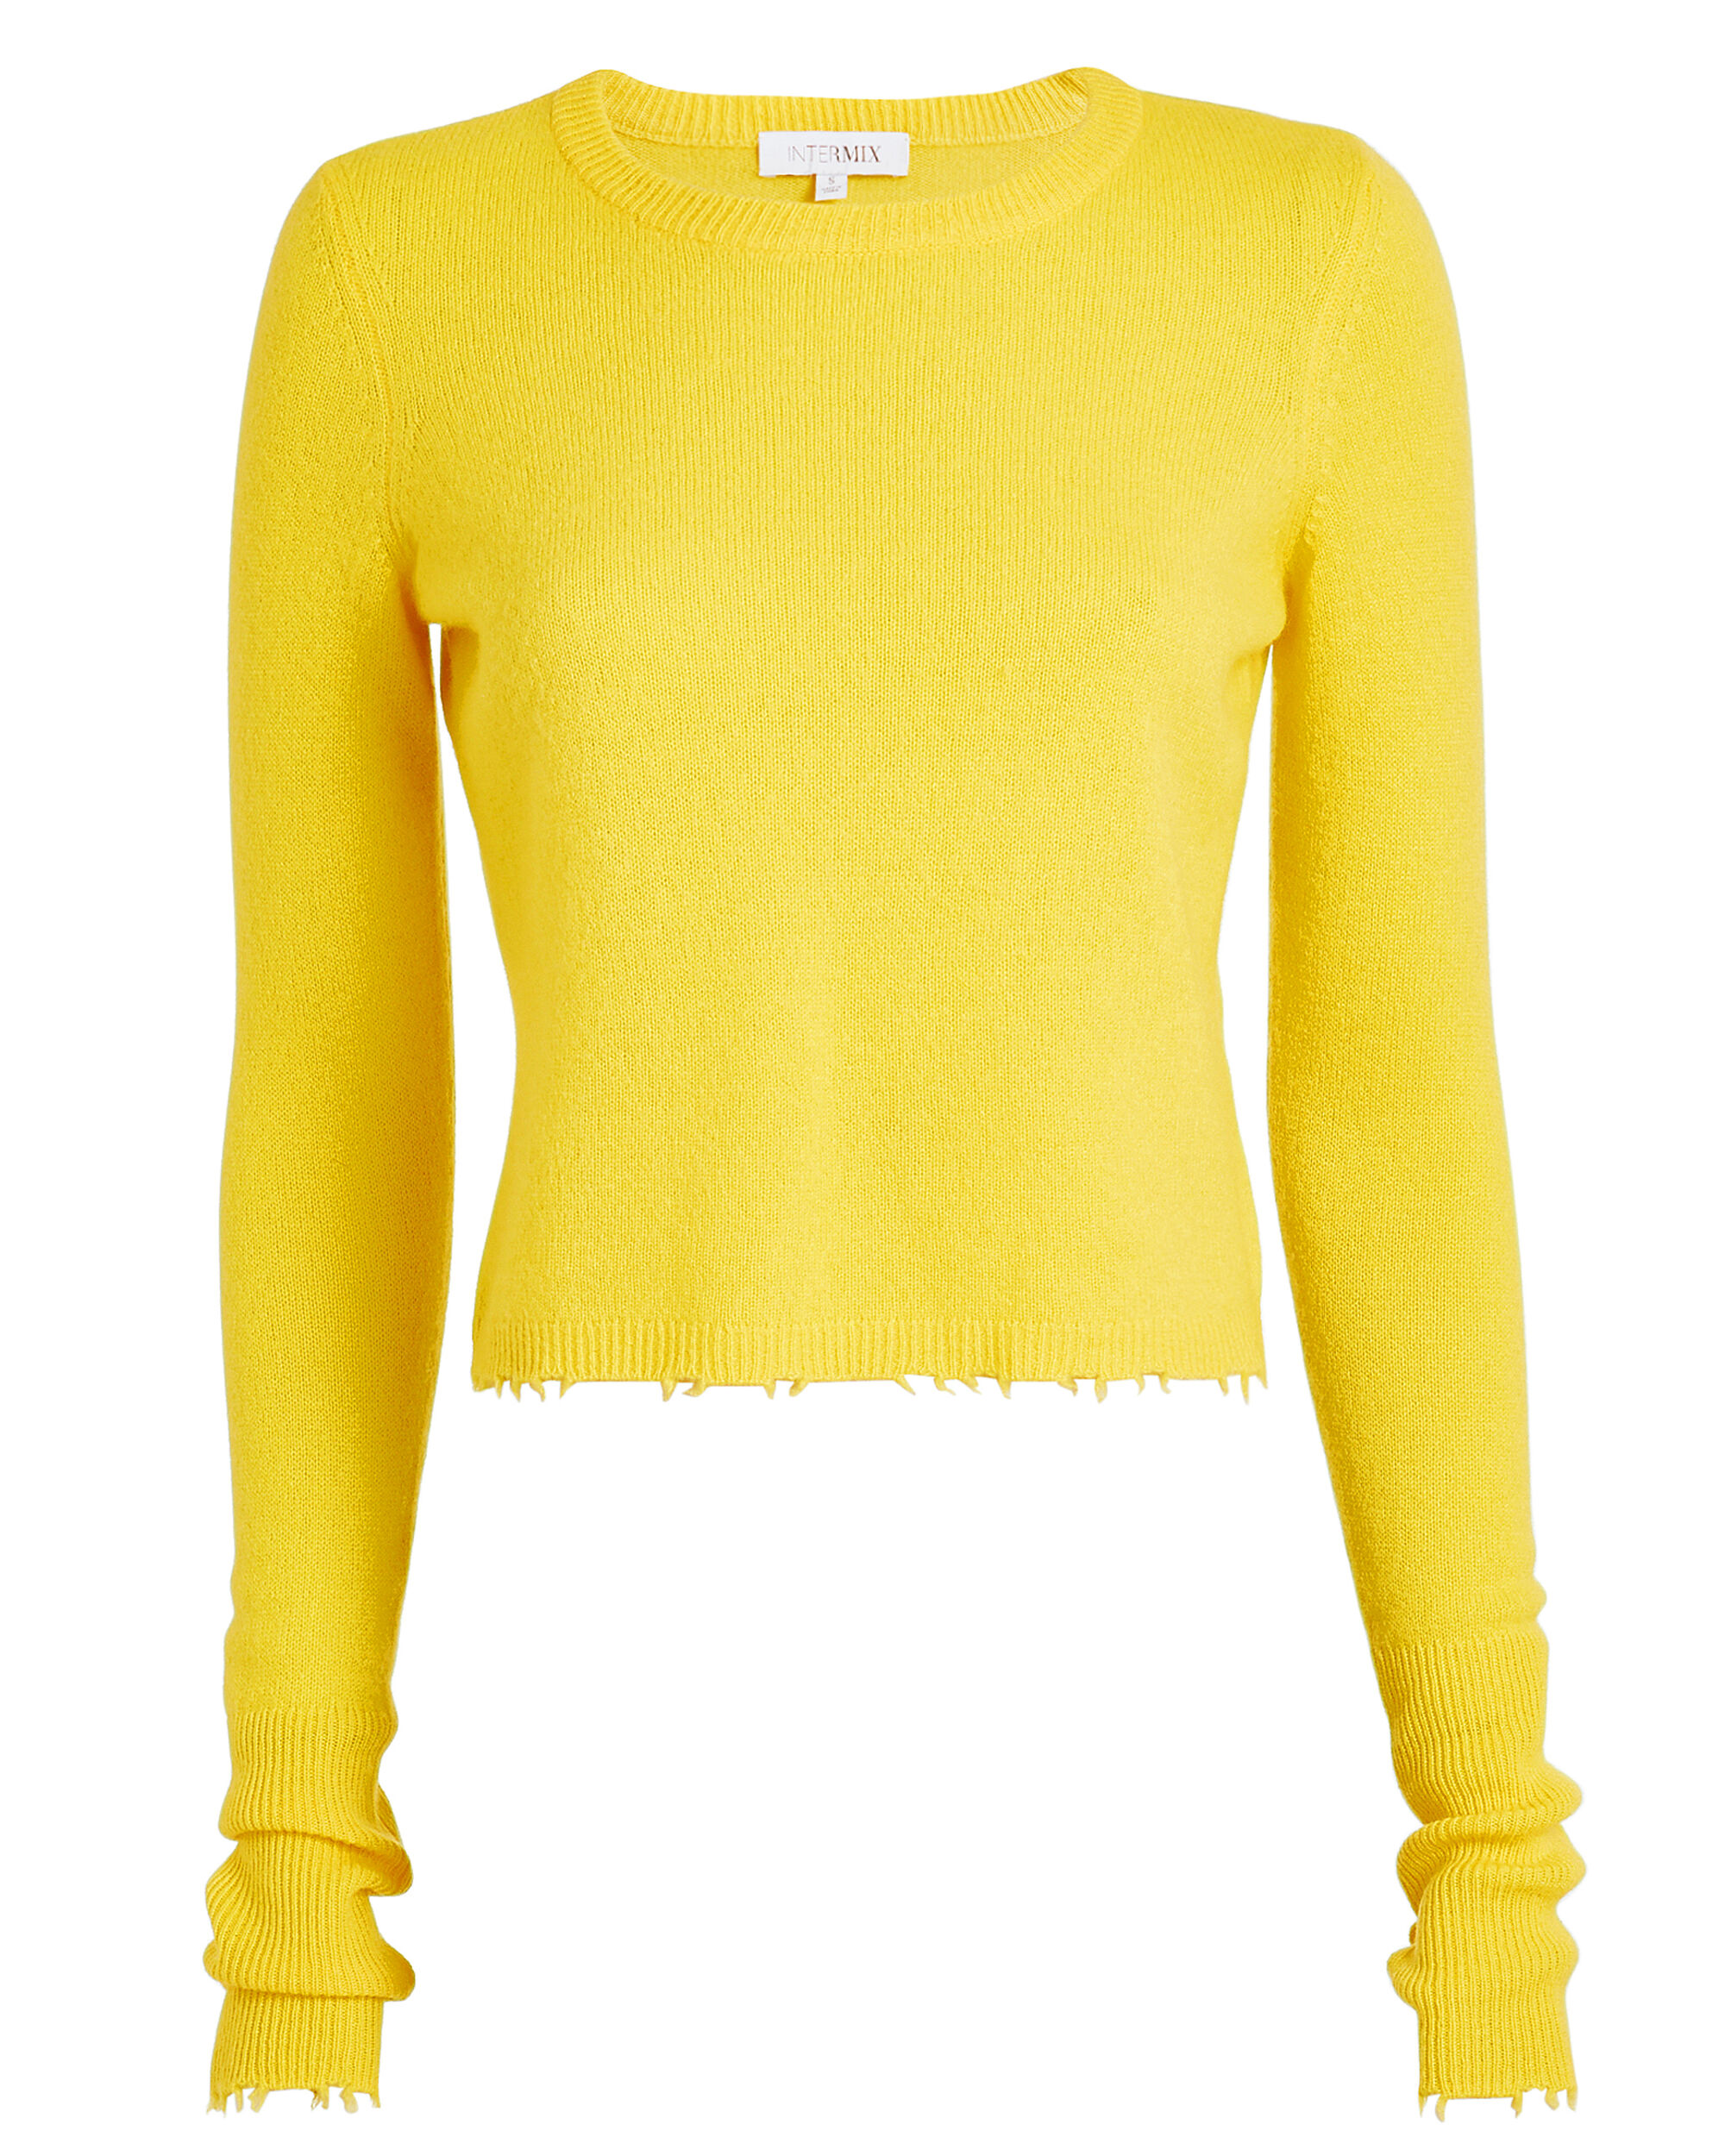 Valencia Cropped Cashmere Yellow Sweater, YELLOW, hi-res